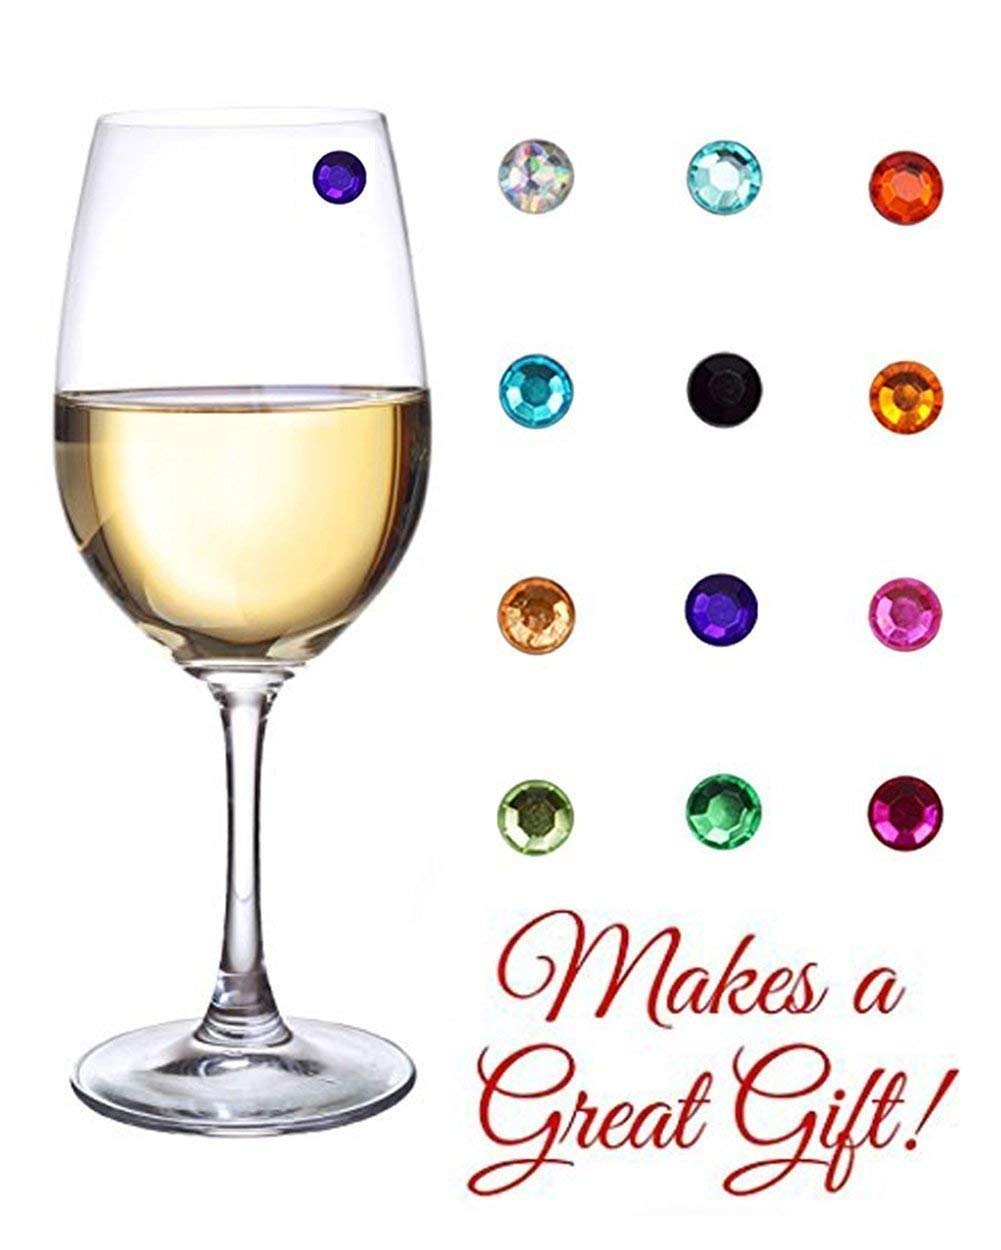 MODAR Elegant Multicolor Crystal Magnetic Wine Glass Charms - Drink Markers for Wine, Champagne, Beer and Cocktail Glasses (Set of 12) - Box Included for Storage or Gifting